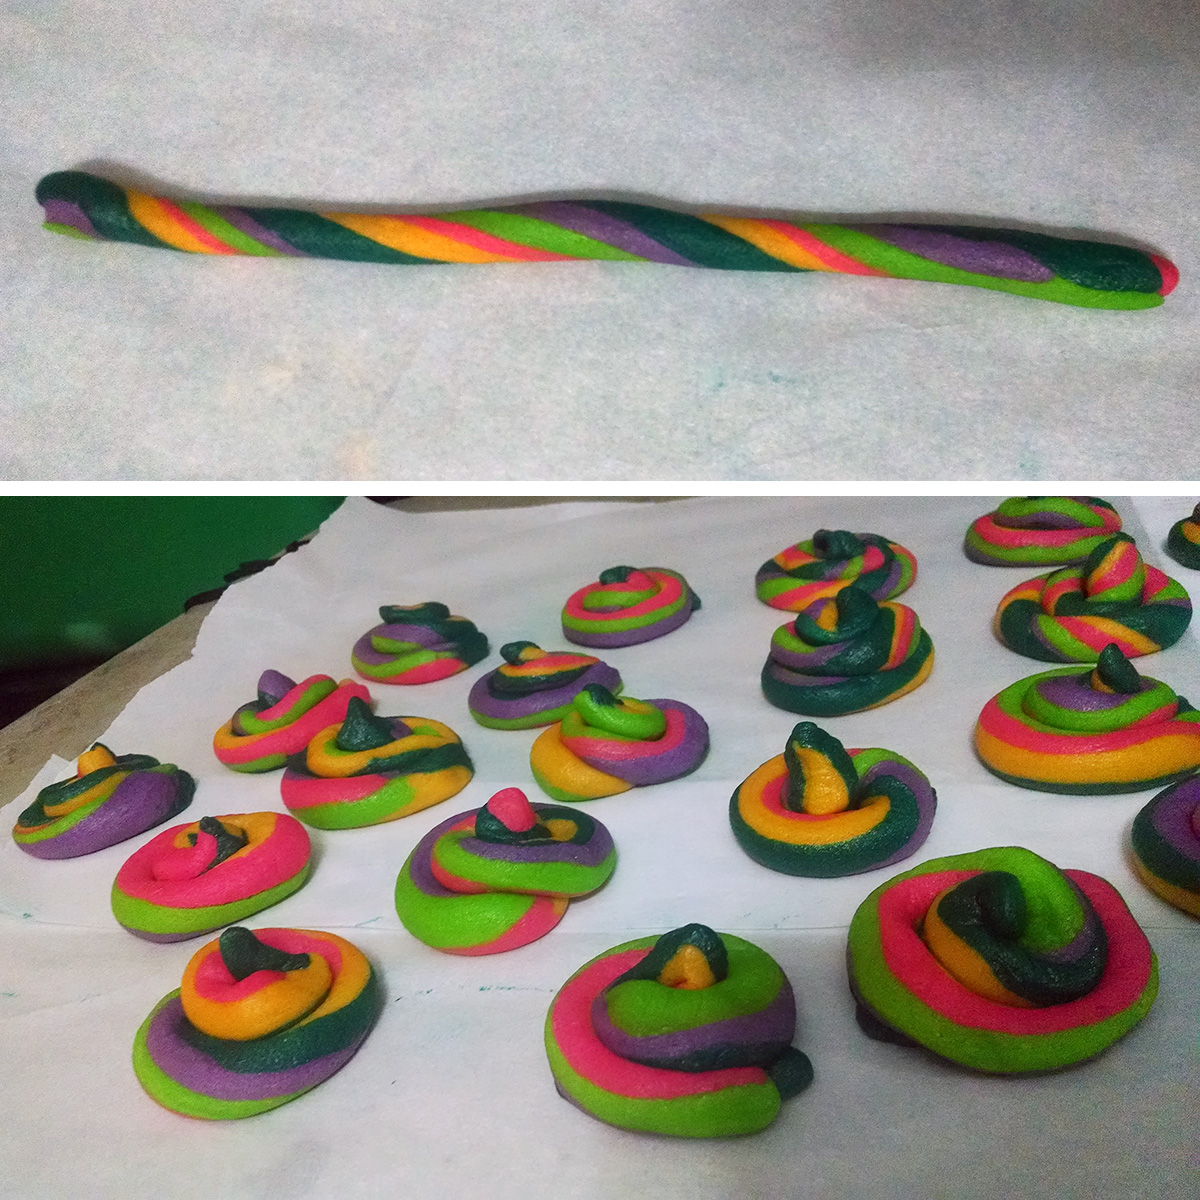 """A two part compilation image showing one long rope of twisted, brightly coloured cookie dough on top, then a tray of formed """"unicorn poop"""" cookies on the bottom image."""